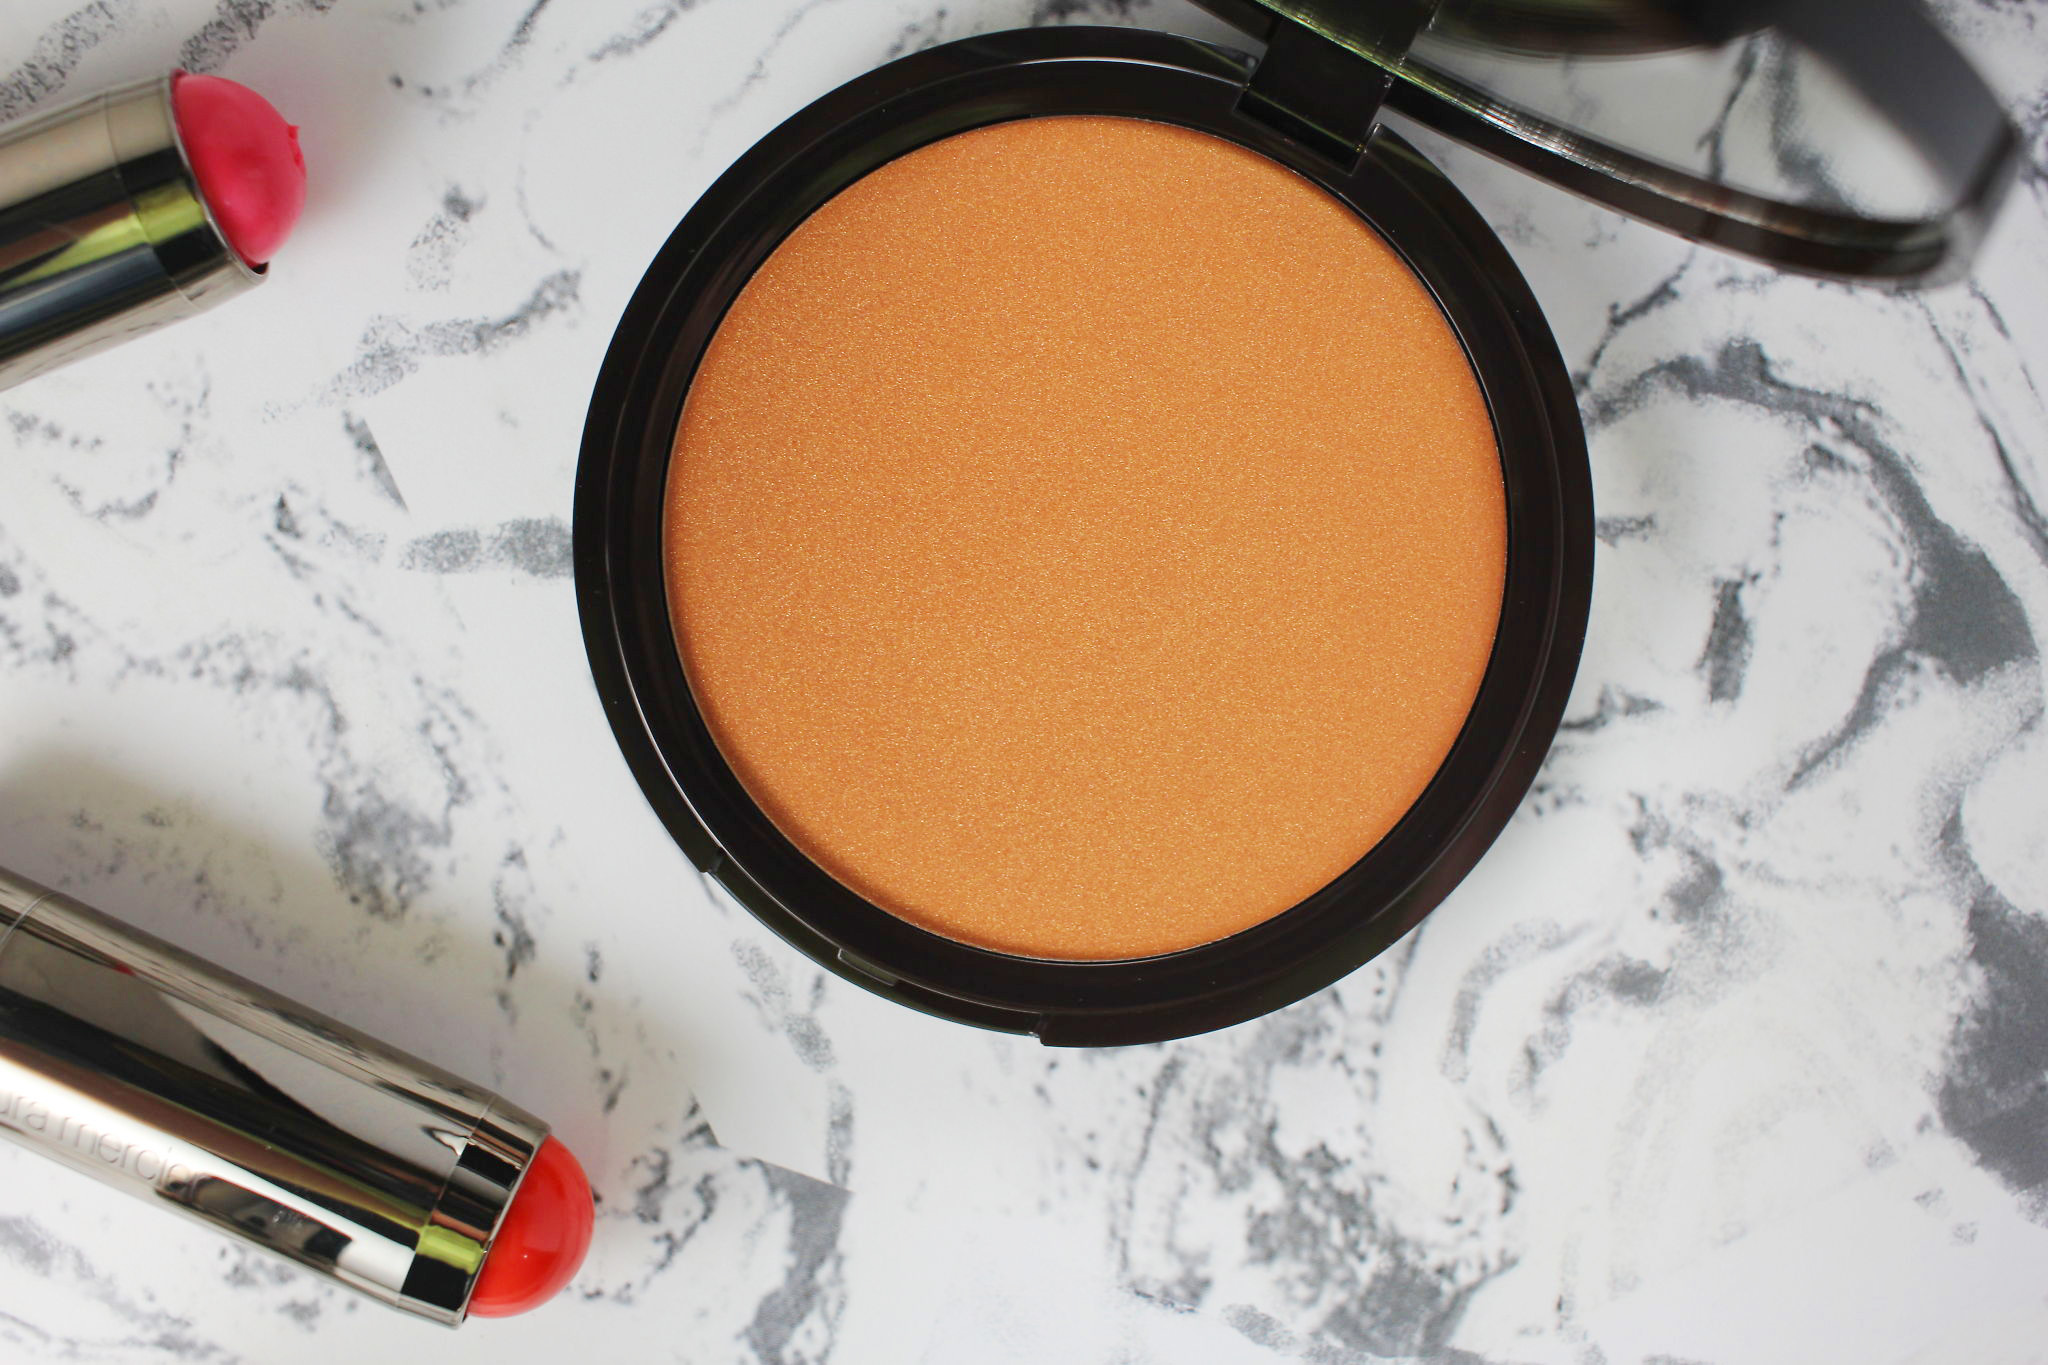 Laura Mercier Bronzed Butter Face and Body Veil